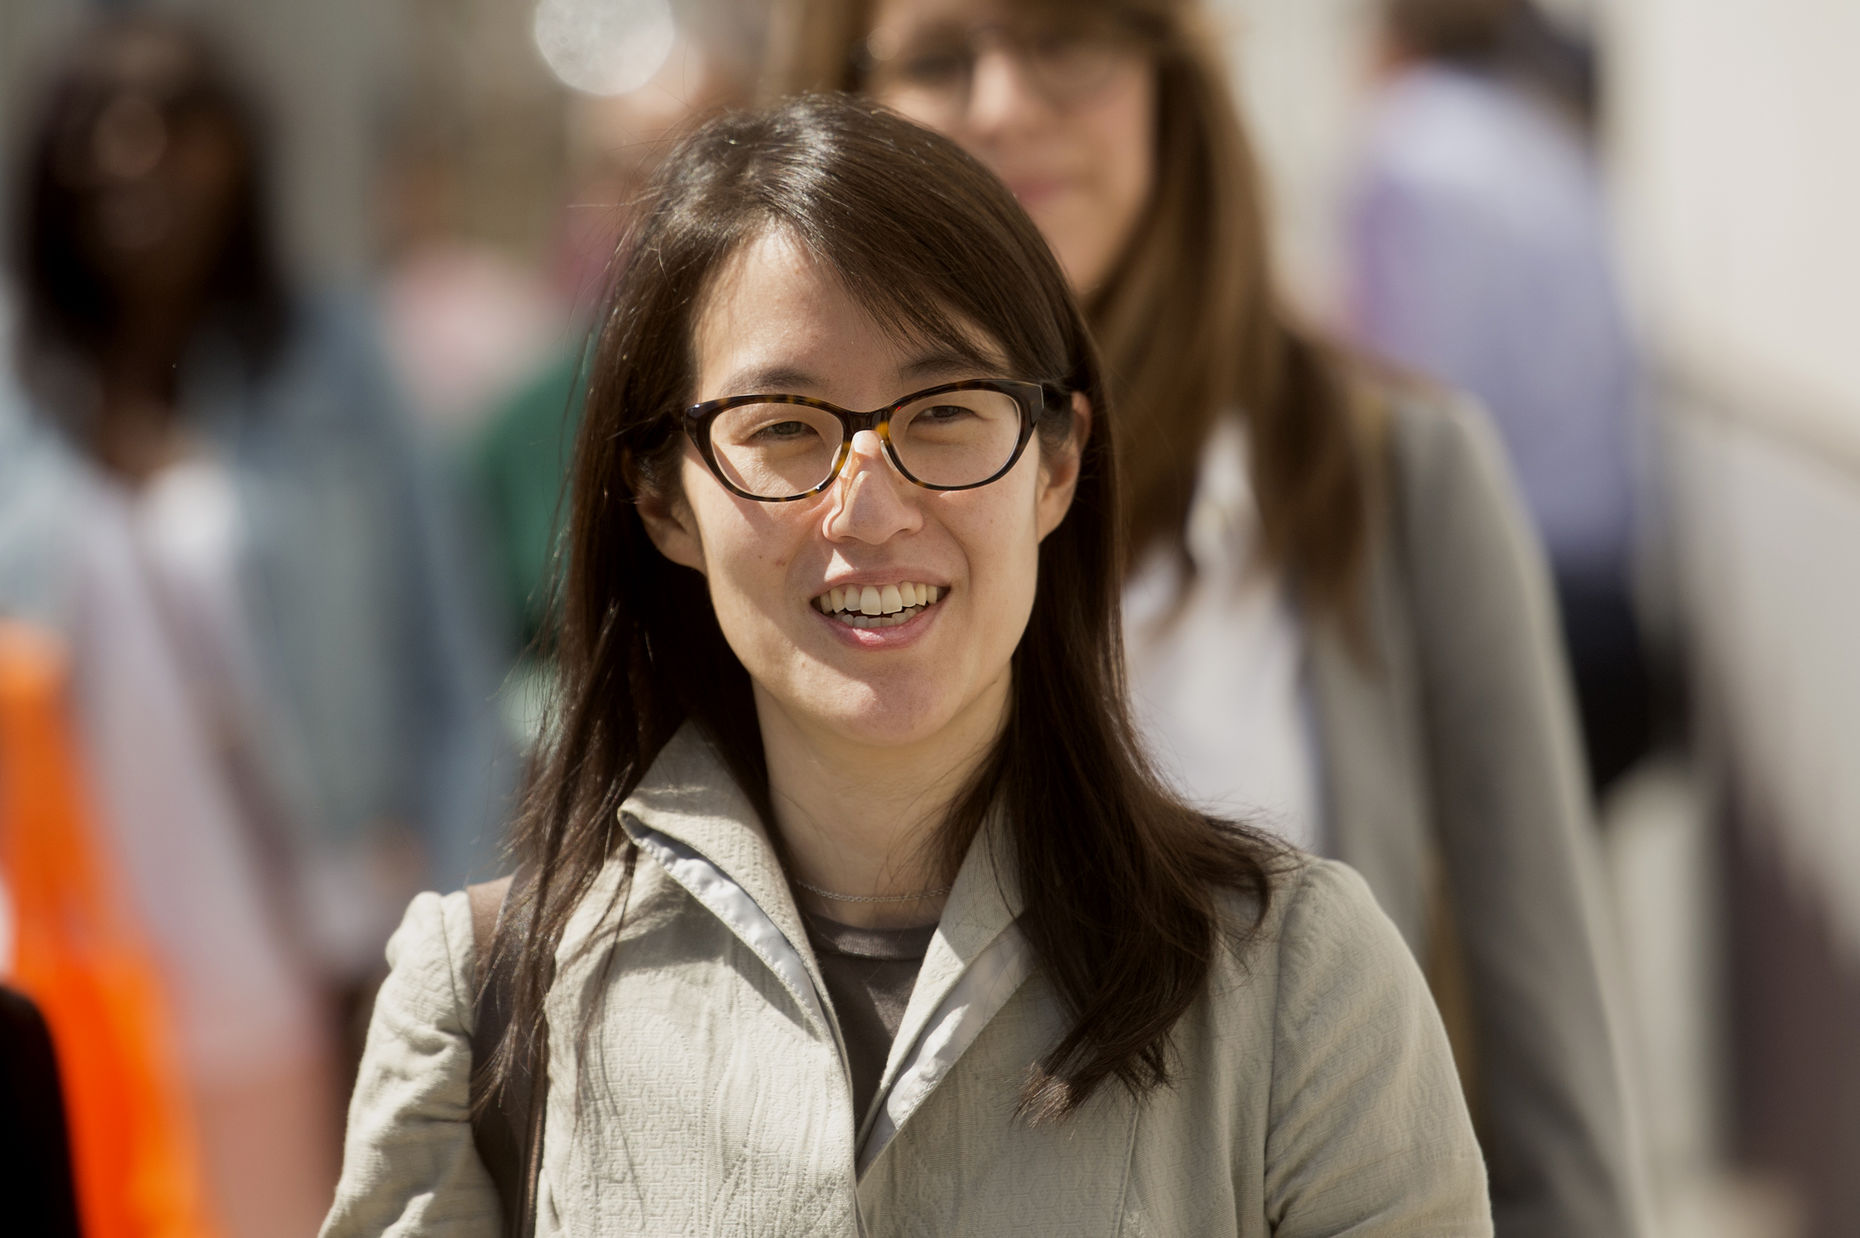 Ellen Pao. Photo by Bloomberg.